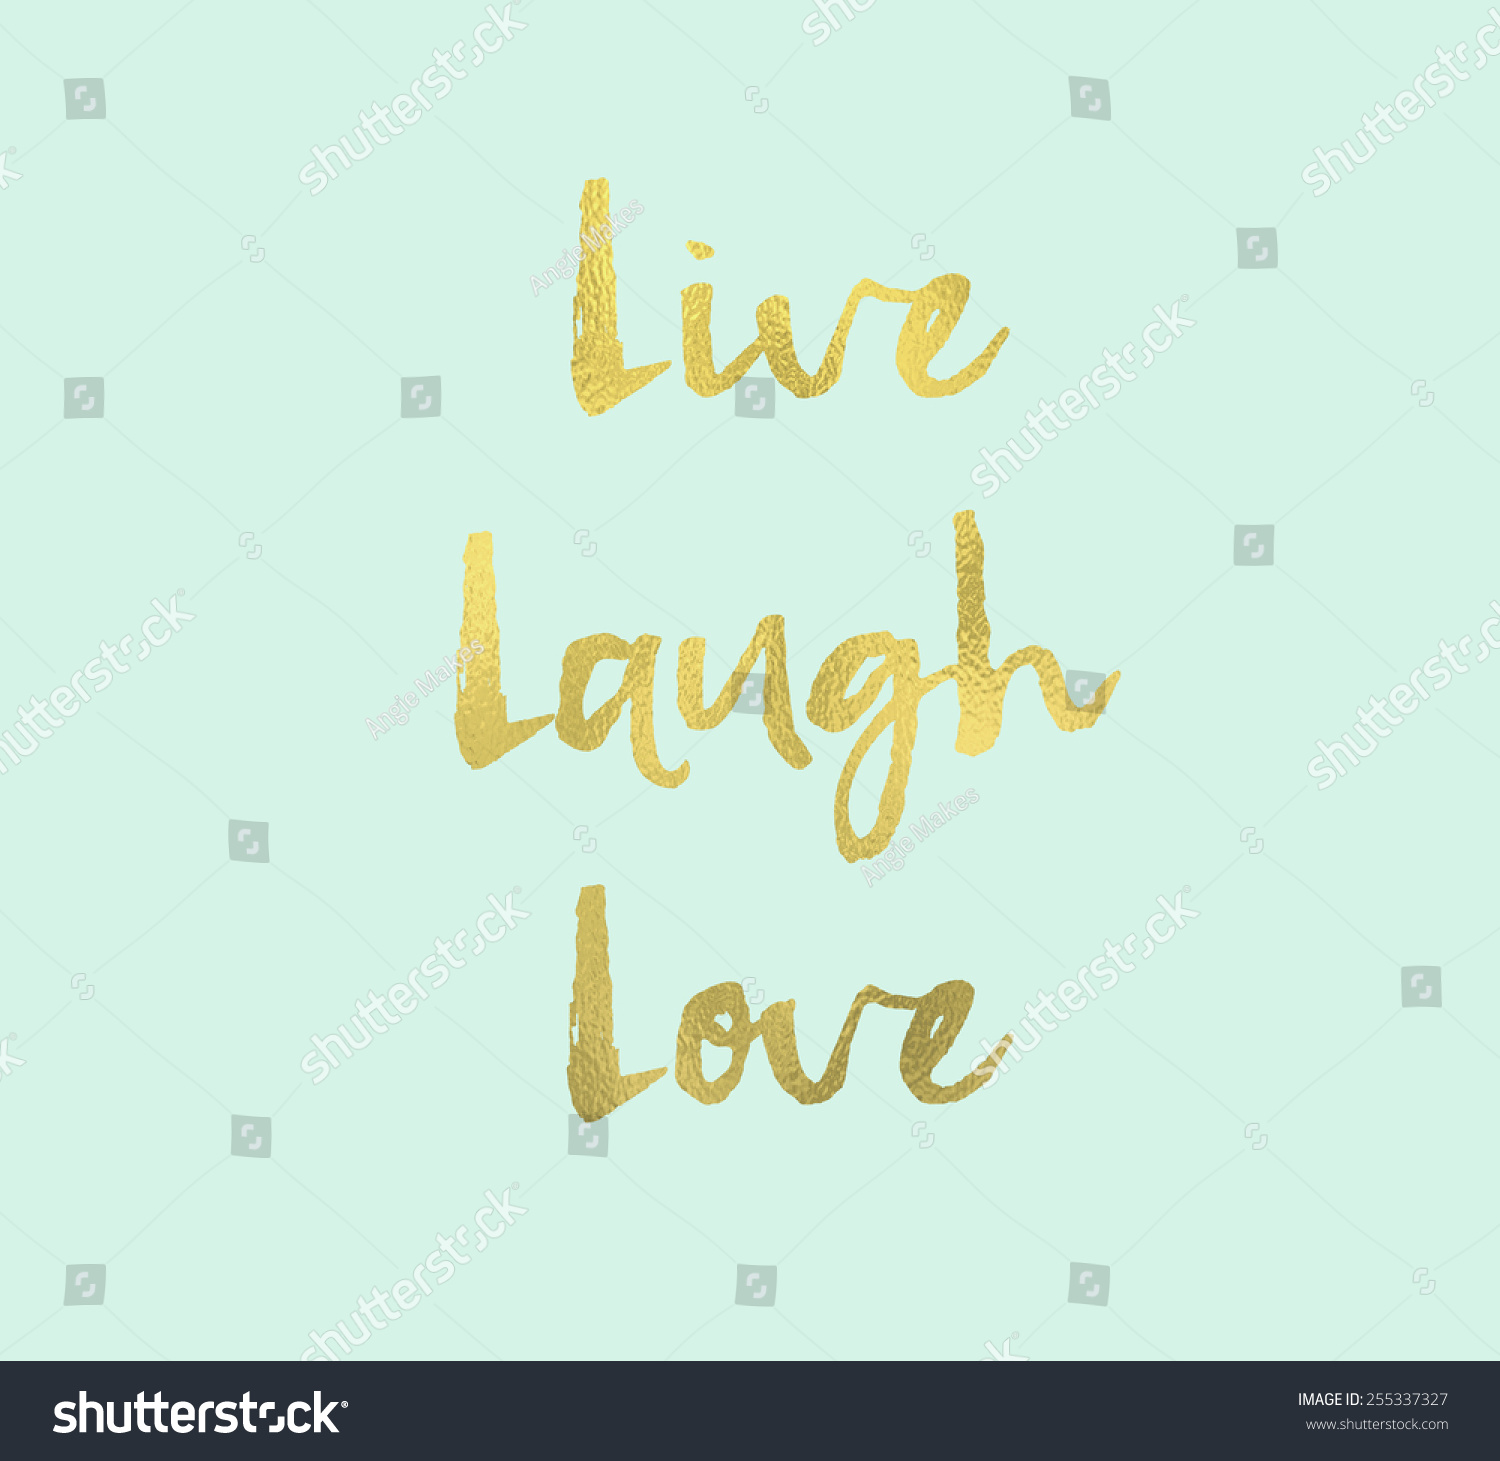 live laugh love wall art hand stock illustration 255337327 shutterstock. Black Bedroom Furniture Sets. Home Design Ideas